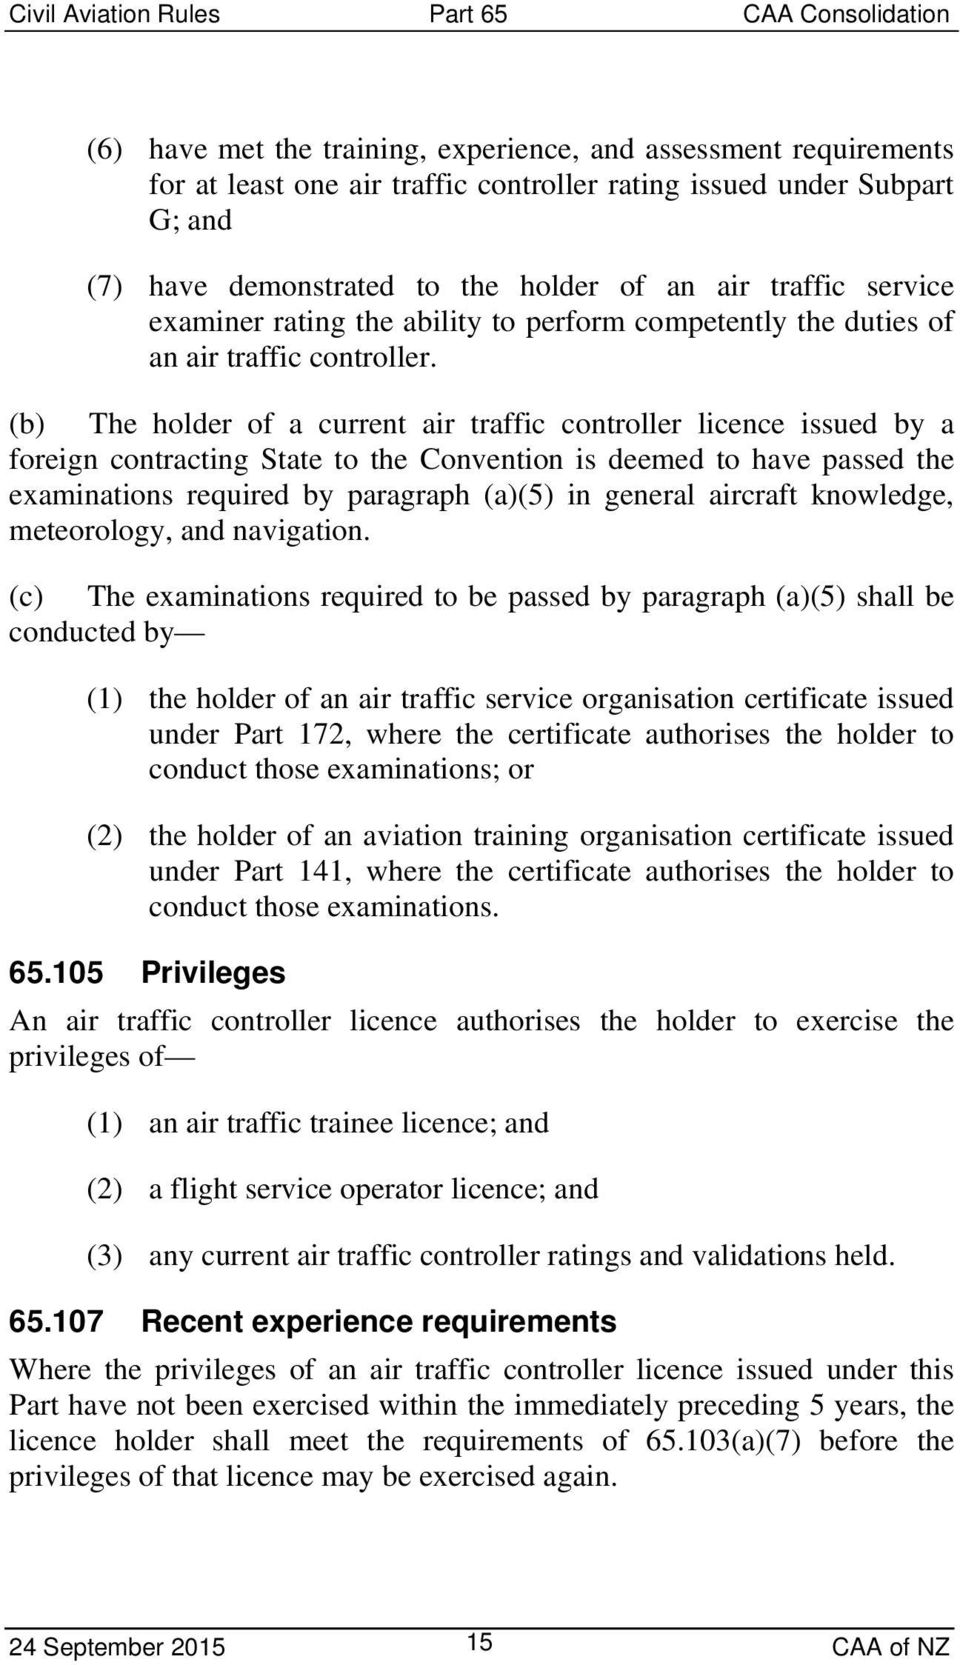 (b) The holder of a current air traffic controller licence issued by a foreign contracting State to the Convention is deemed to have passed the examinations required by paragraph (a)(5) in general